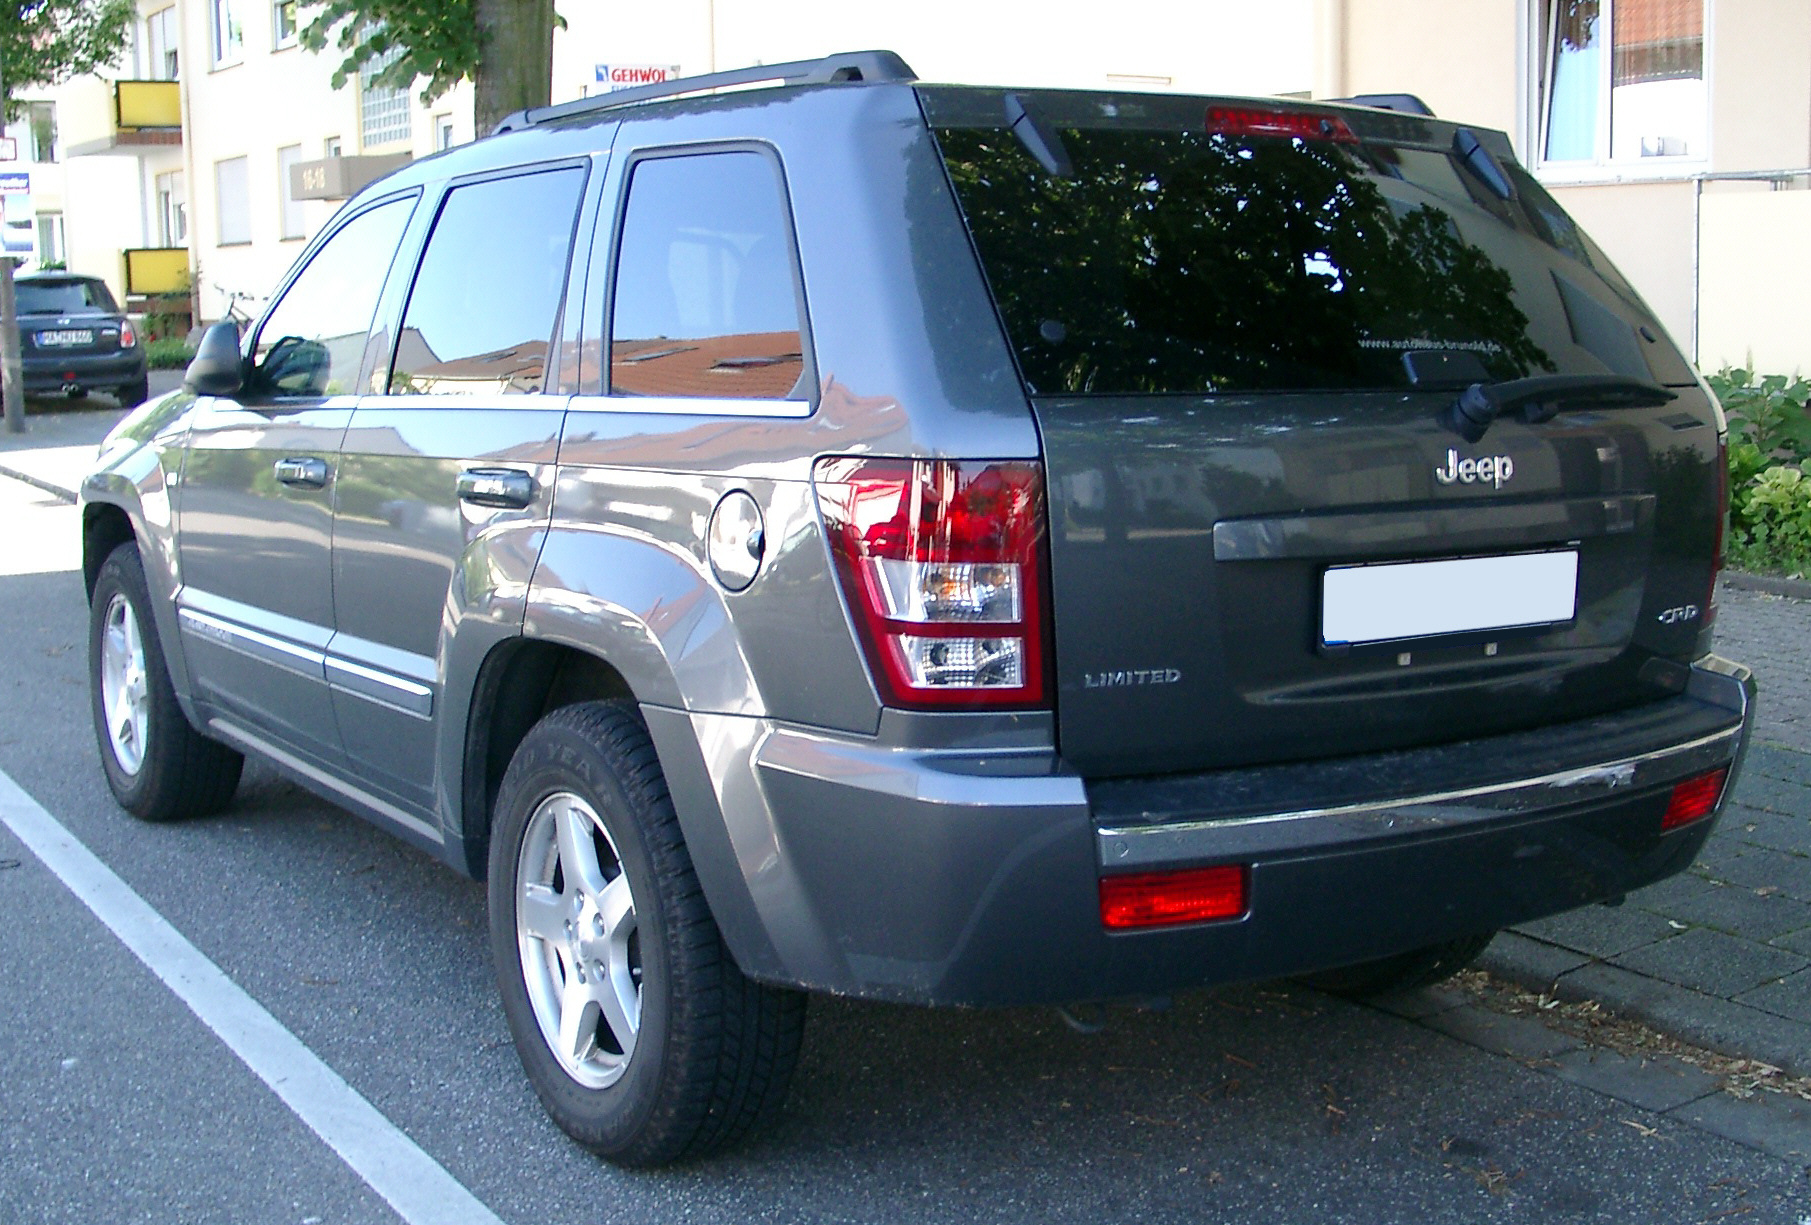 File:Jeep Grand Cherokee rear 20070518.jpg - Wikimedia Commons